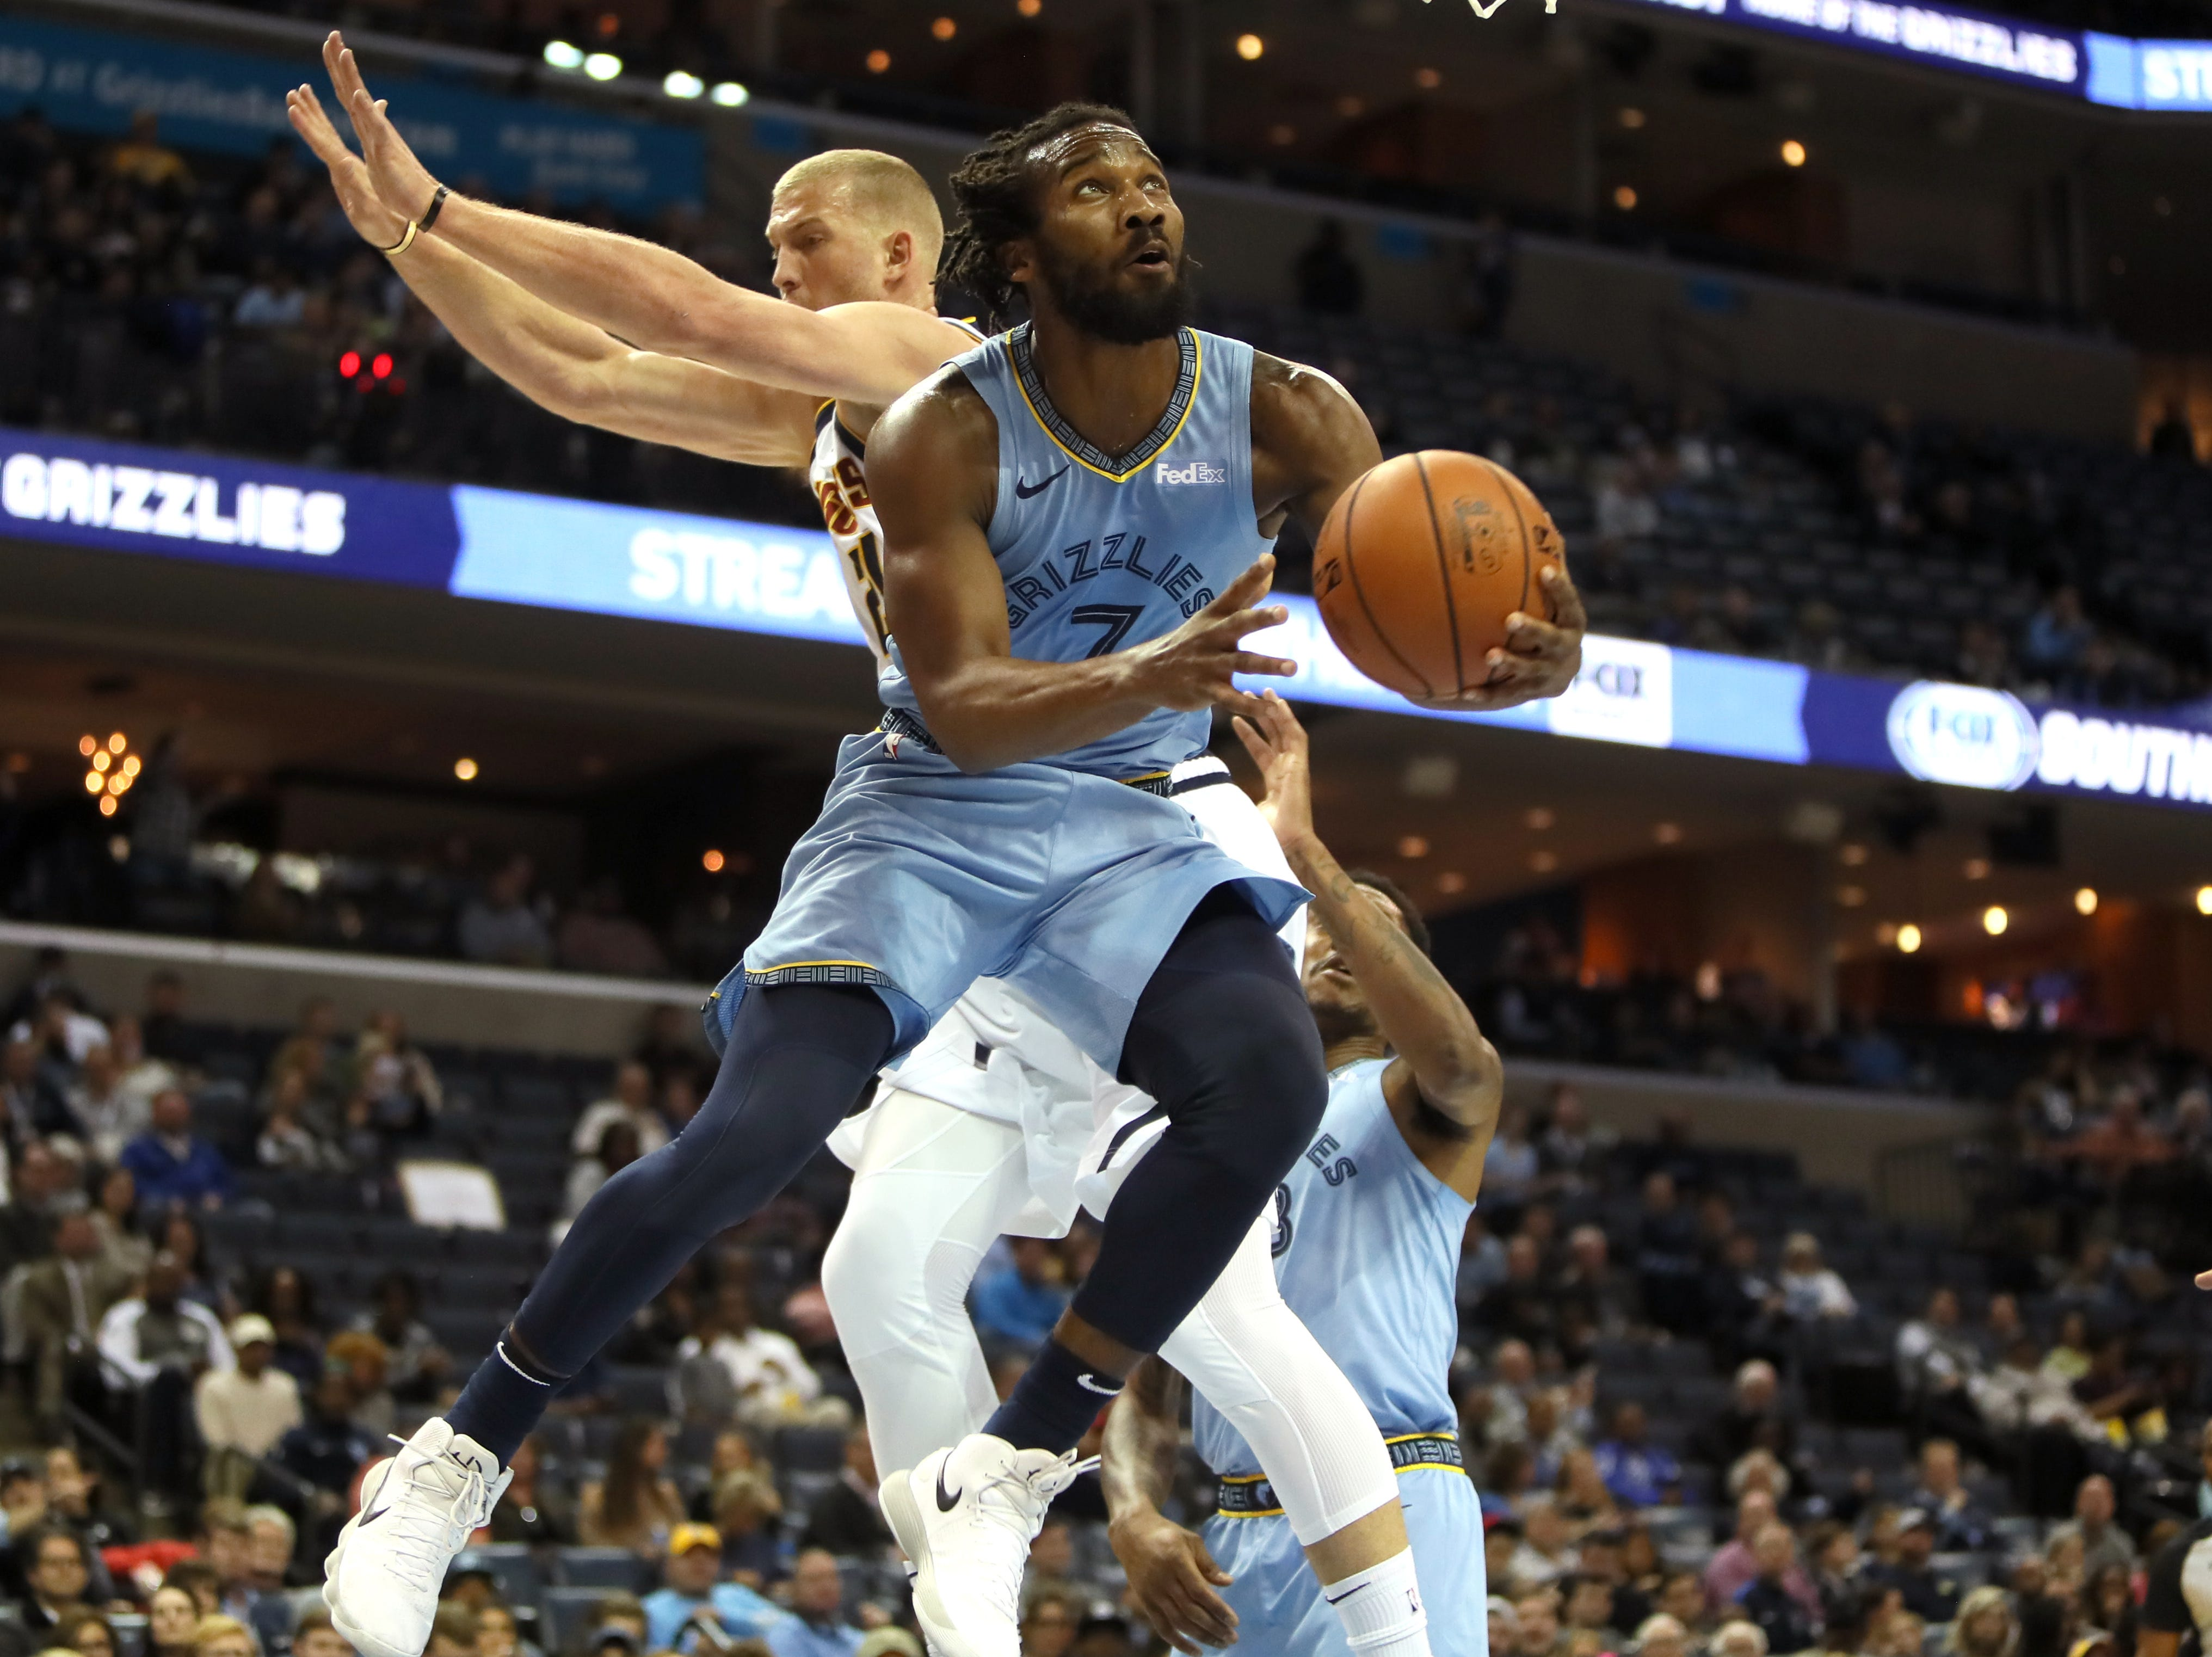 Memphis Grizzlies guard Wayne Selden lays the ball up past Denver Nuggets forward Mason Plumlee during their game at the FedExForum on Wednesday, November 7, 2018.